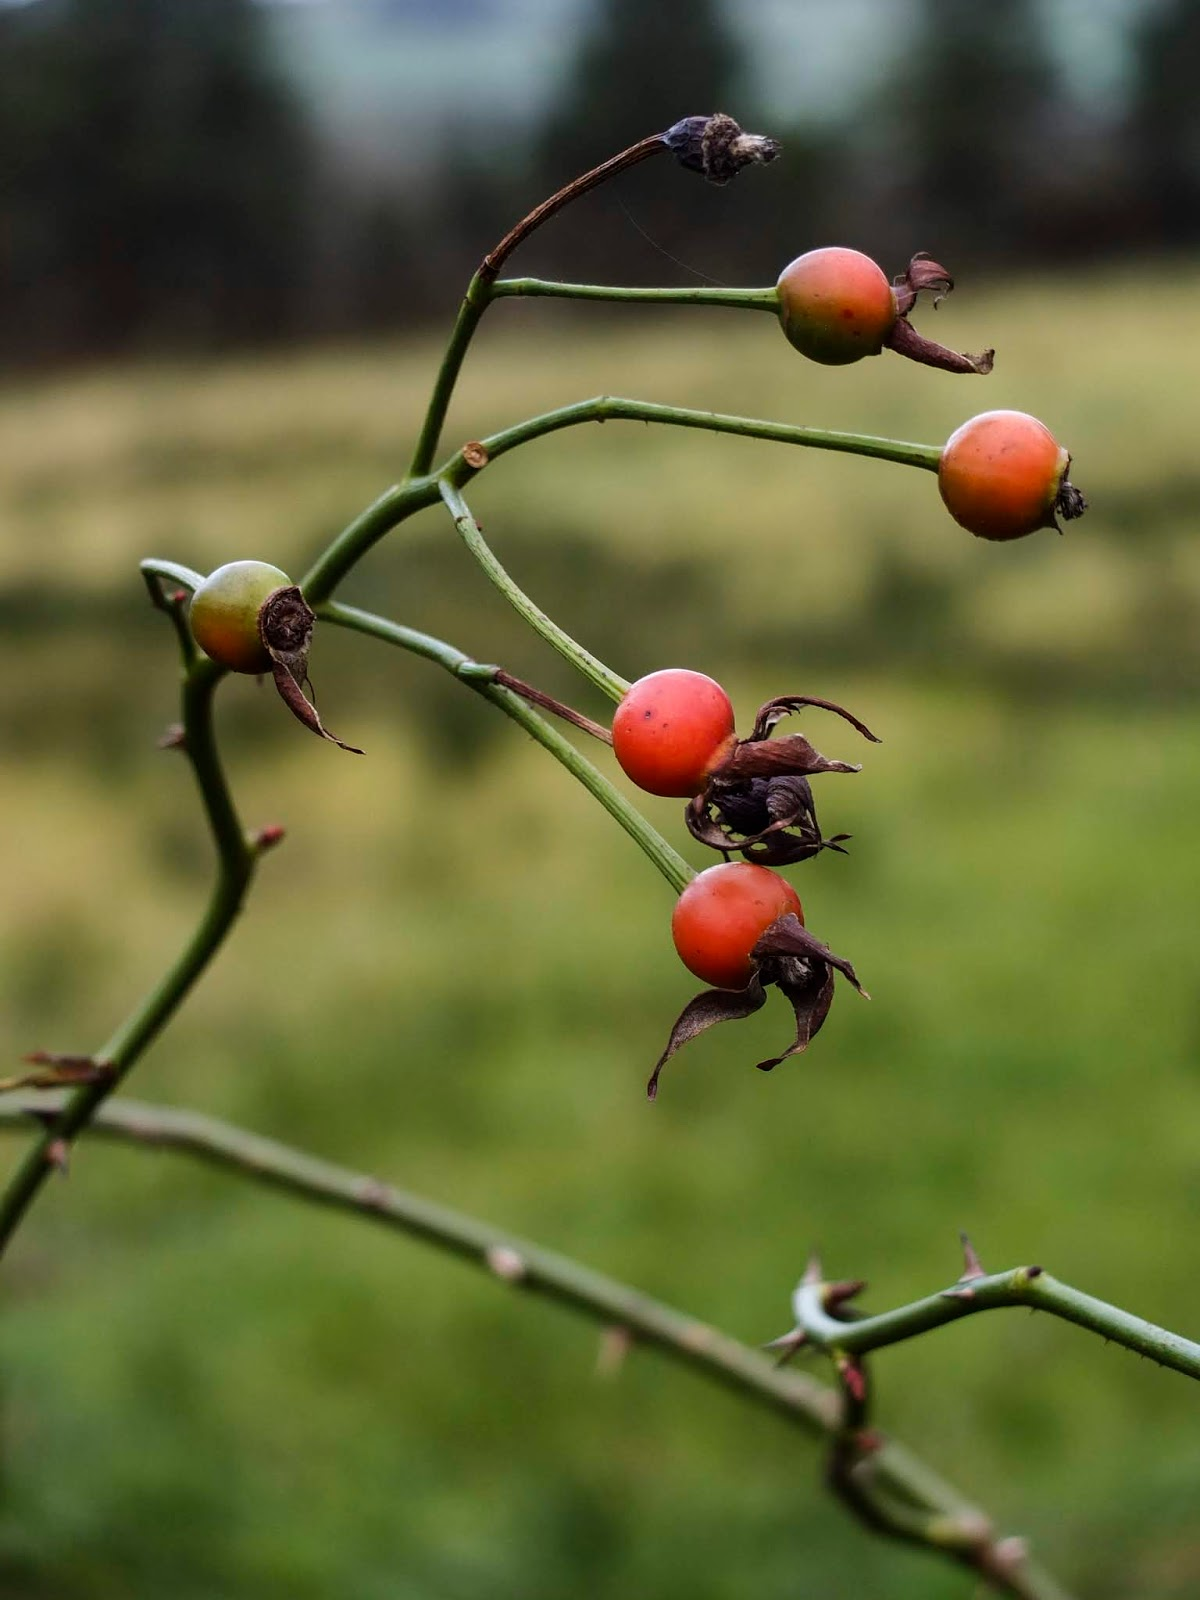 Close up of rose hips at different stages of maturity.